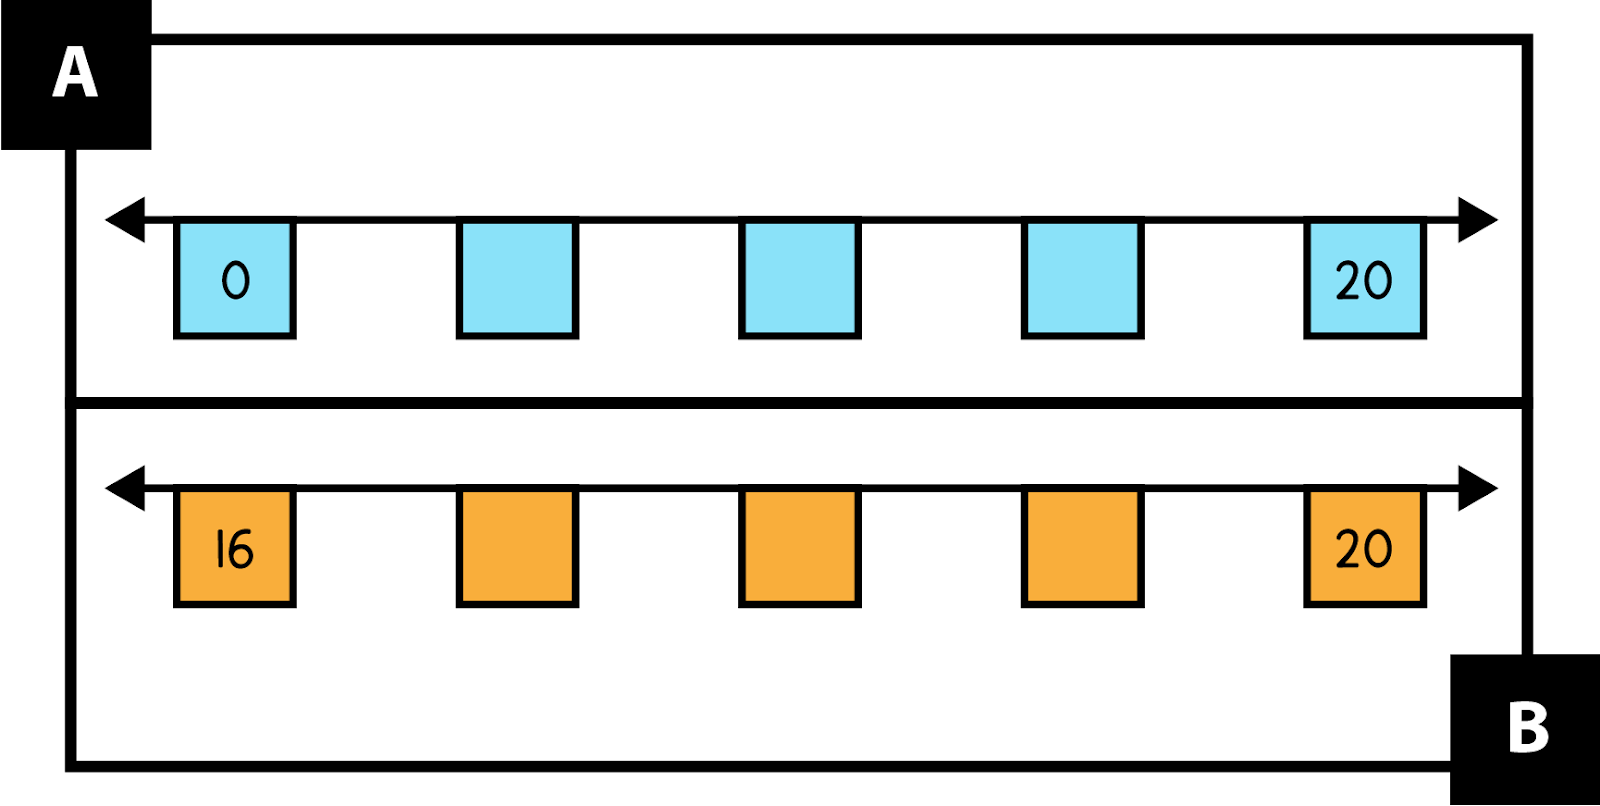 A. shows a blue number line. It starts at 0 then has 3 missing numbers. It ends at 20. B. shows an orange number line. It starts at 16 then has 3 missing numbers. It ends at 20.